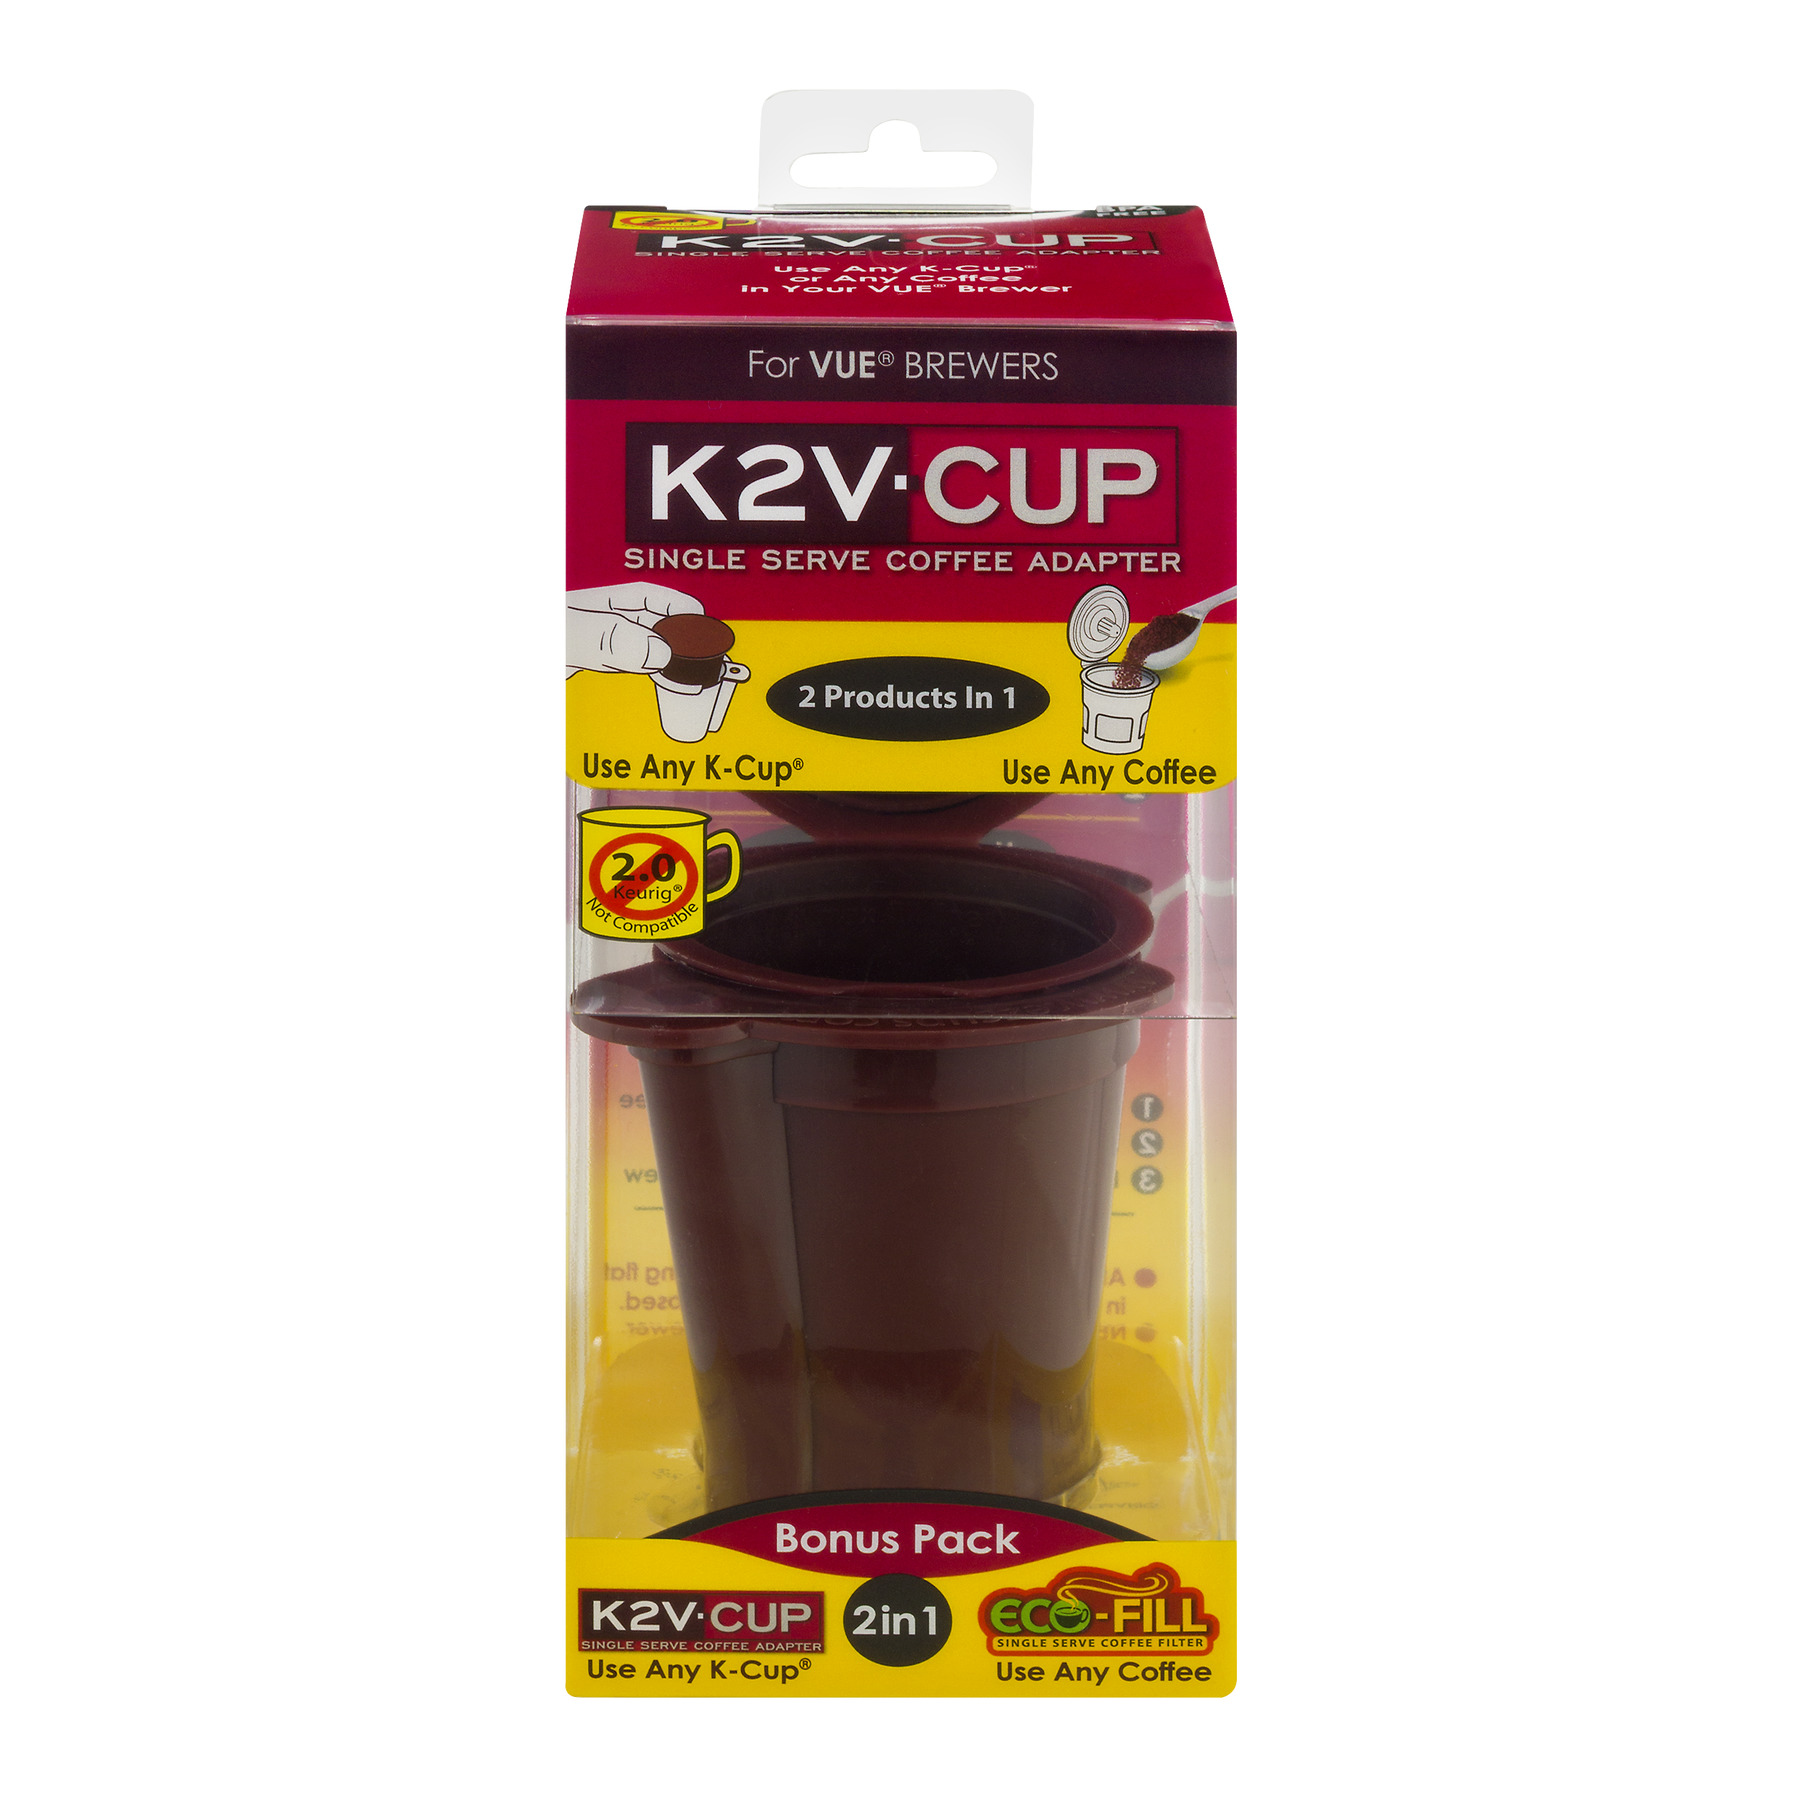 K2V-Cup Single Serve Coffee Adapter, 1.0 CT